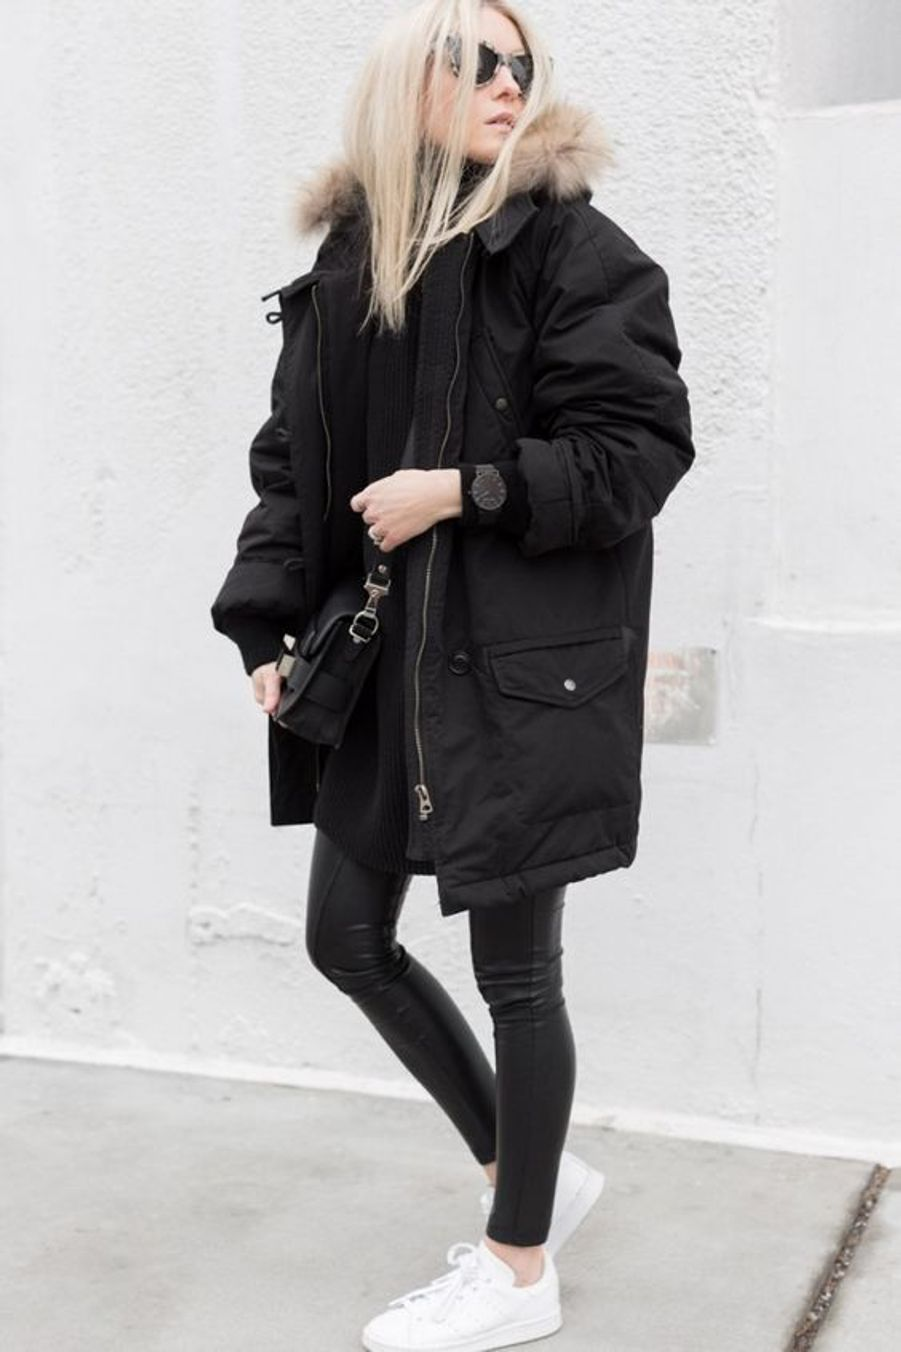 Parka doudoune https://www.pinterest.fr/pin/830140143786046946/